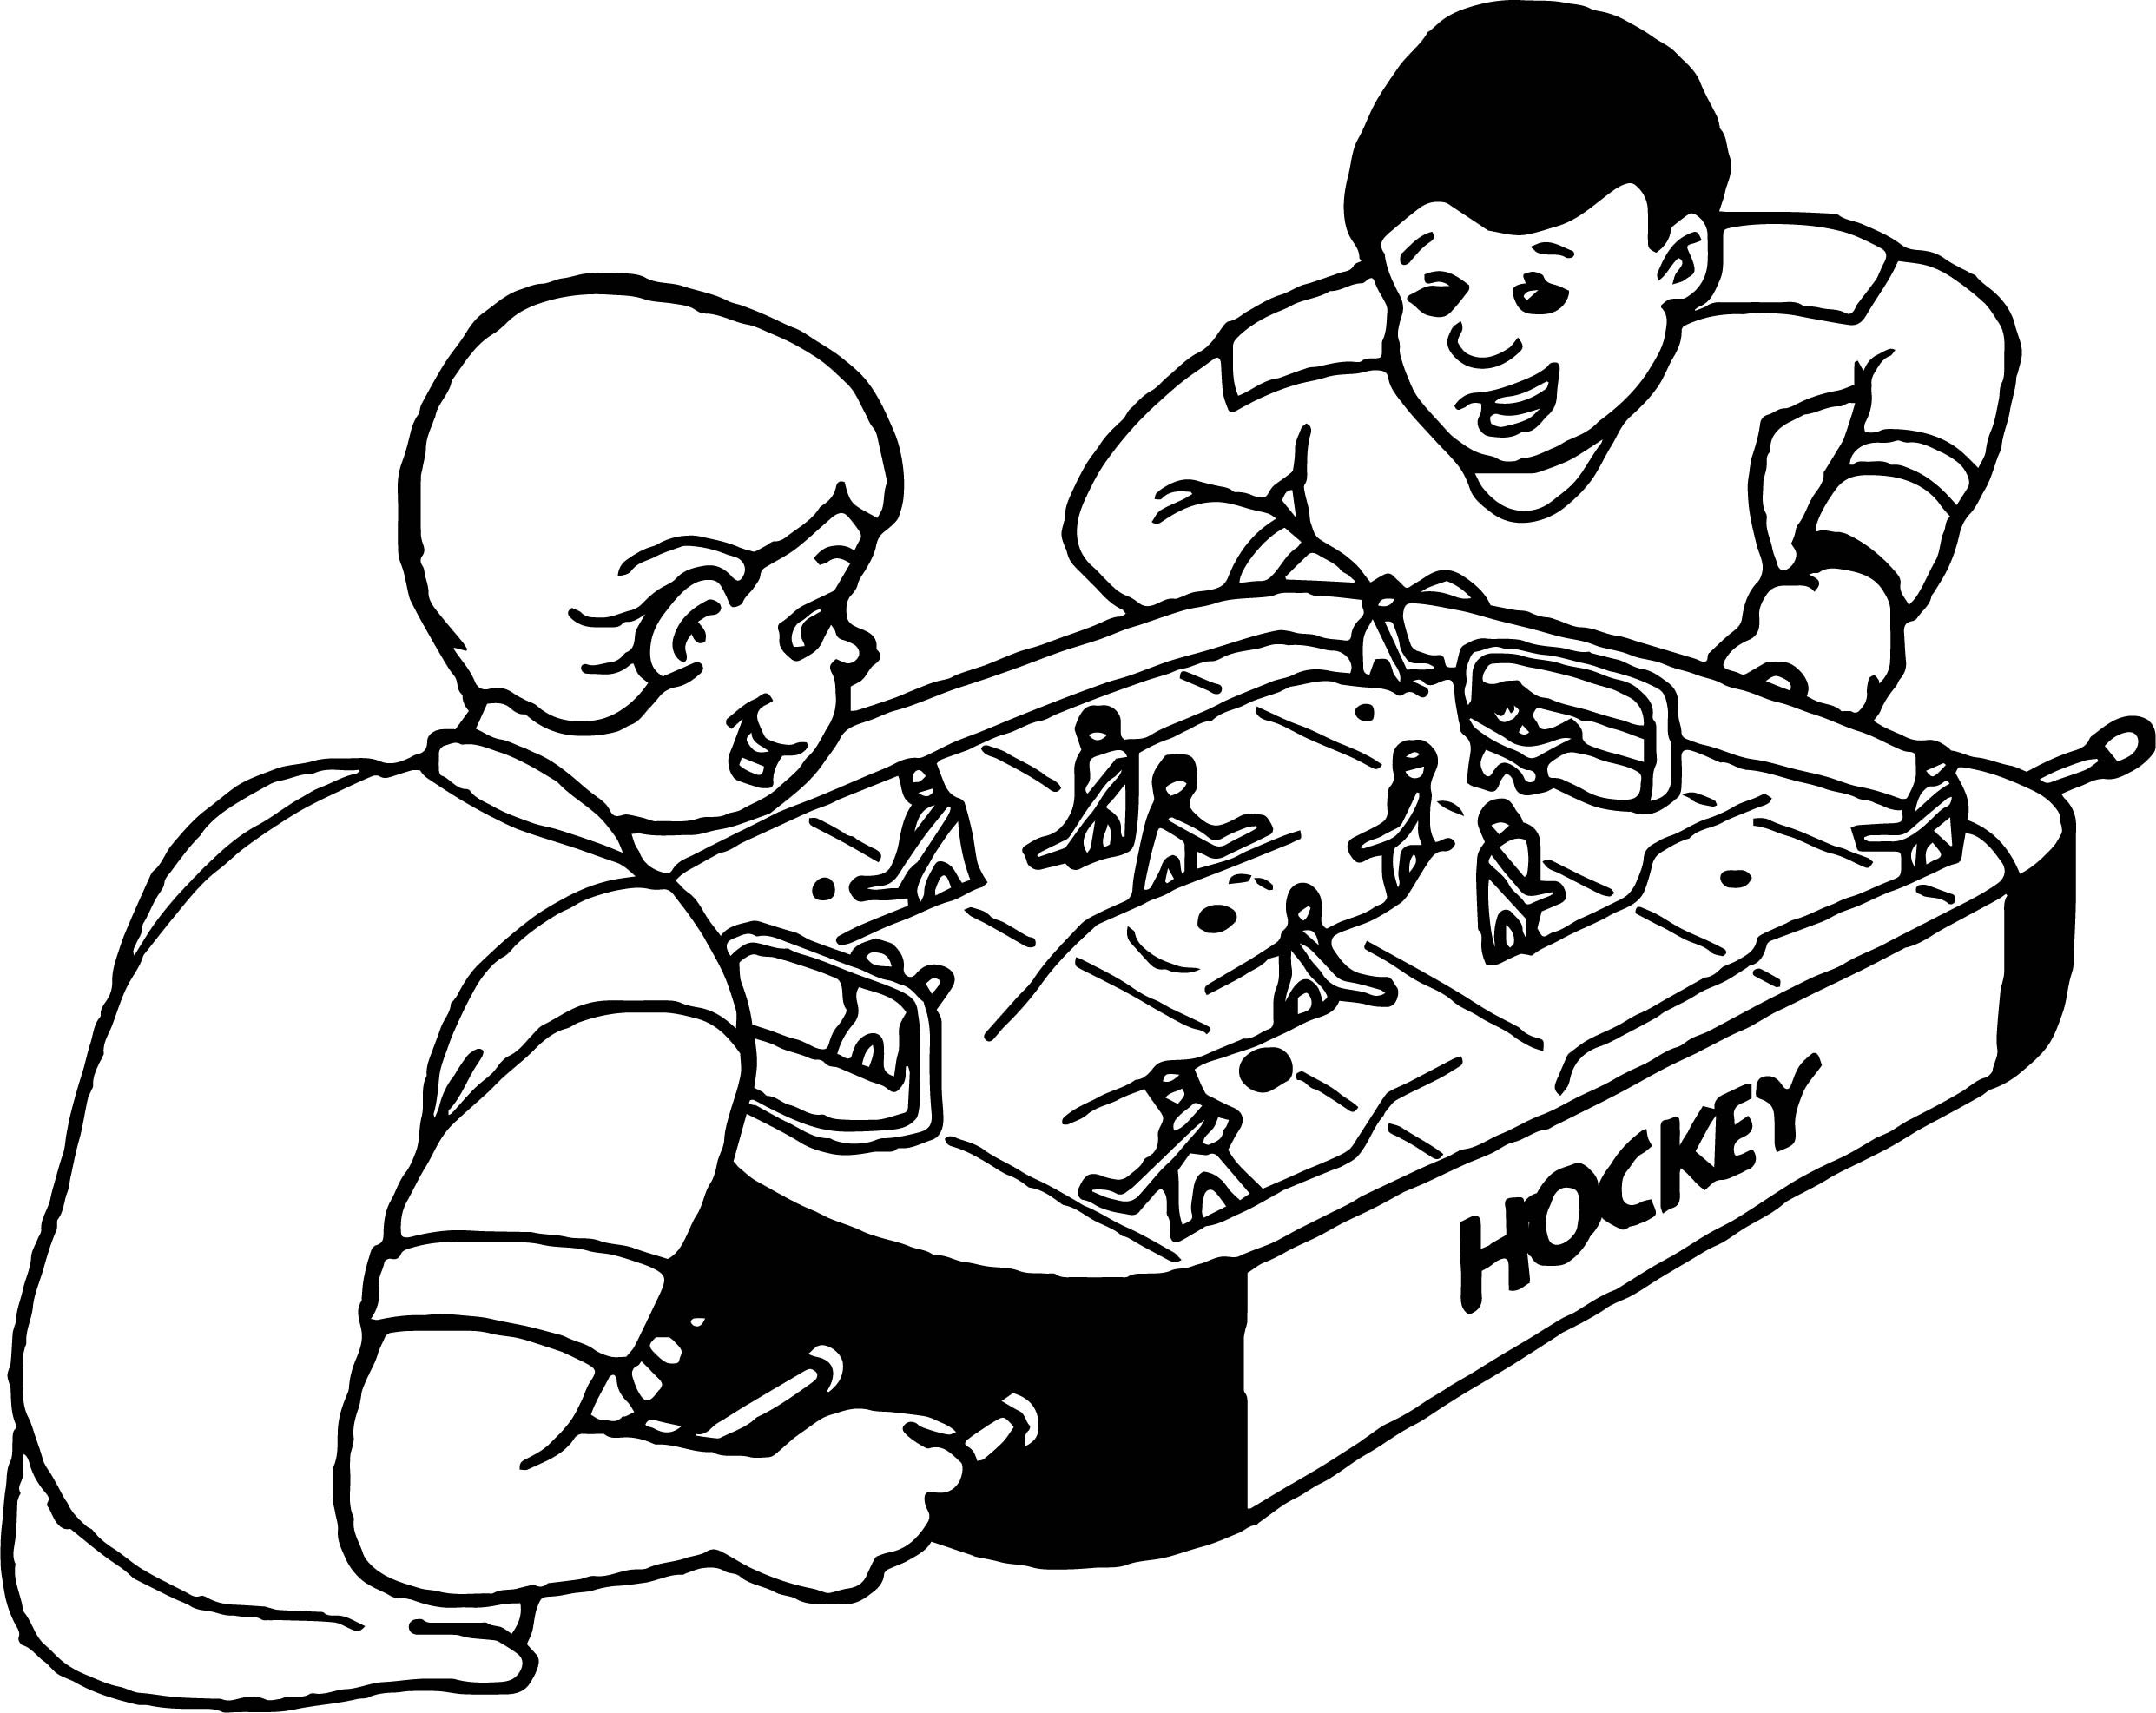 2483x1973 Hockey Coloring Pages Inspirational Boys Play Board Throughout